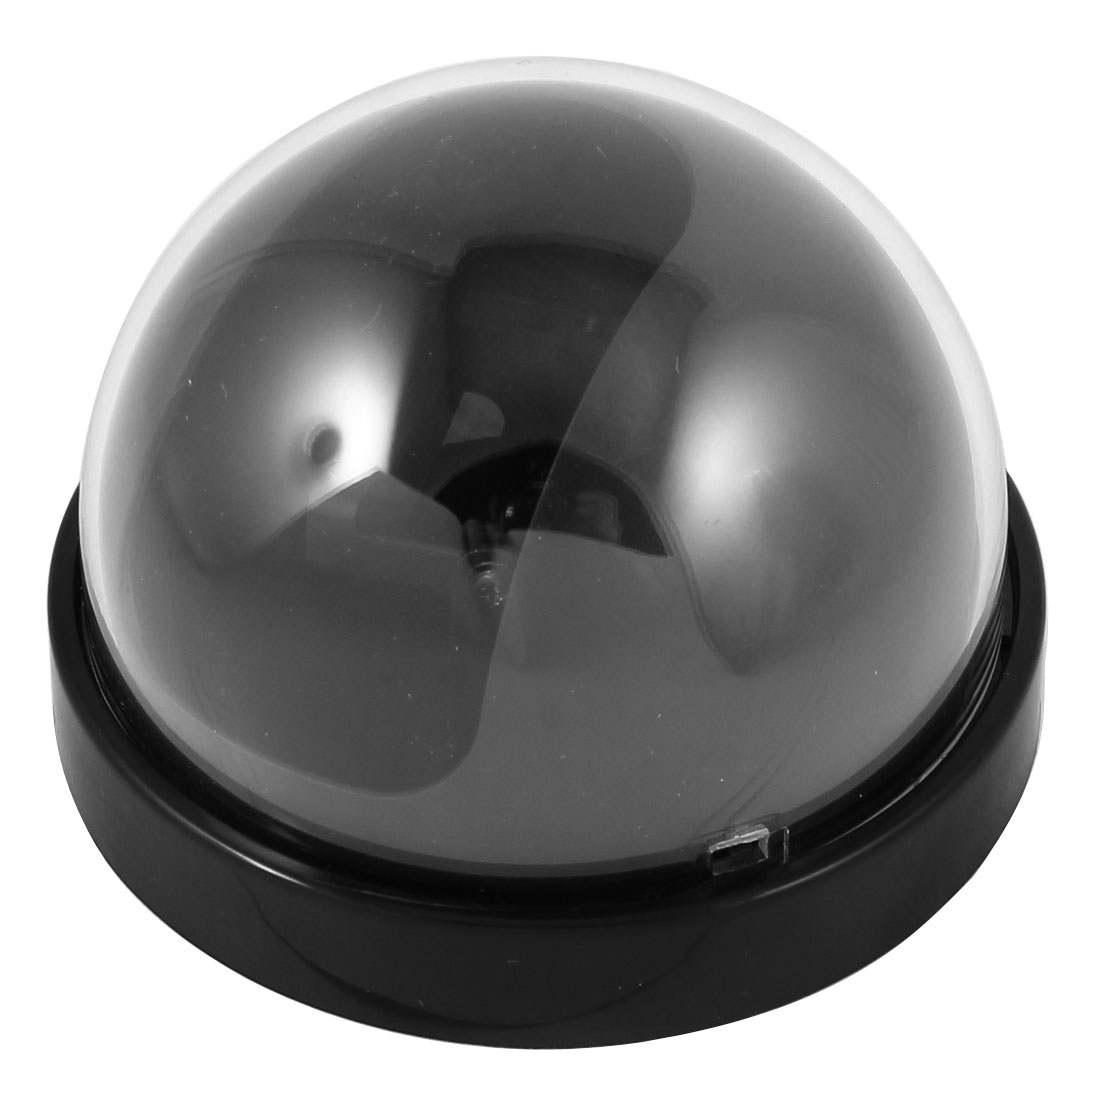 "2.5"" High Surveillance Black Plastic CCTV Dome Camera Housing Case"